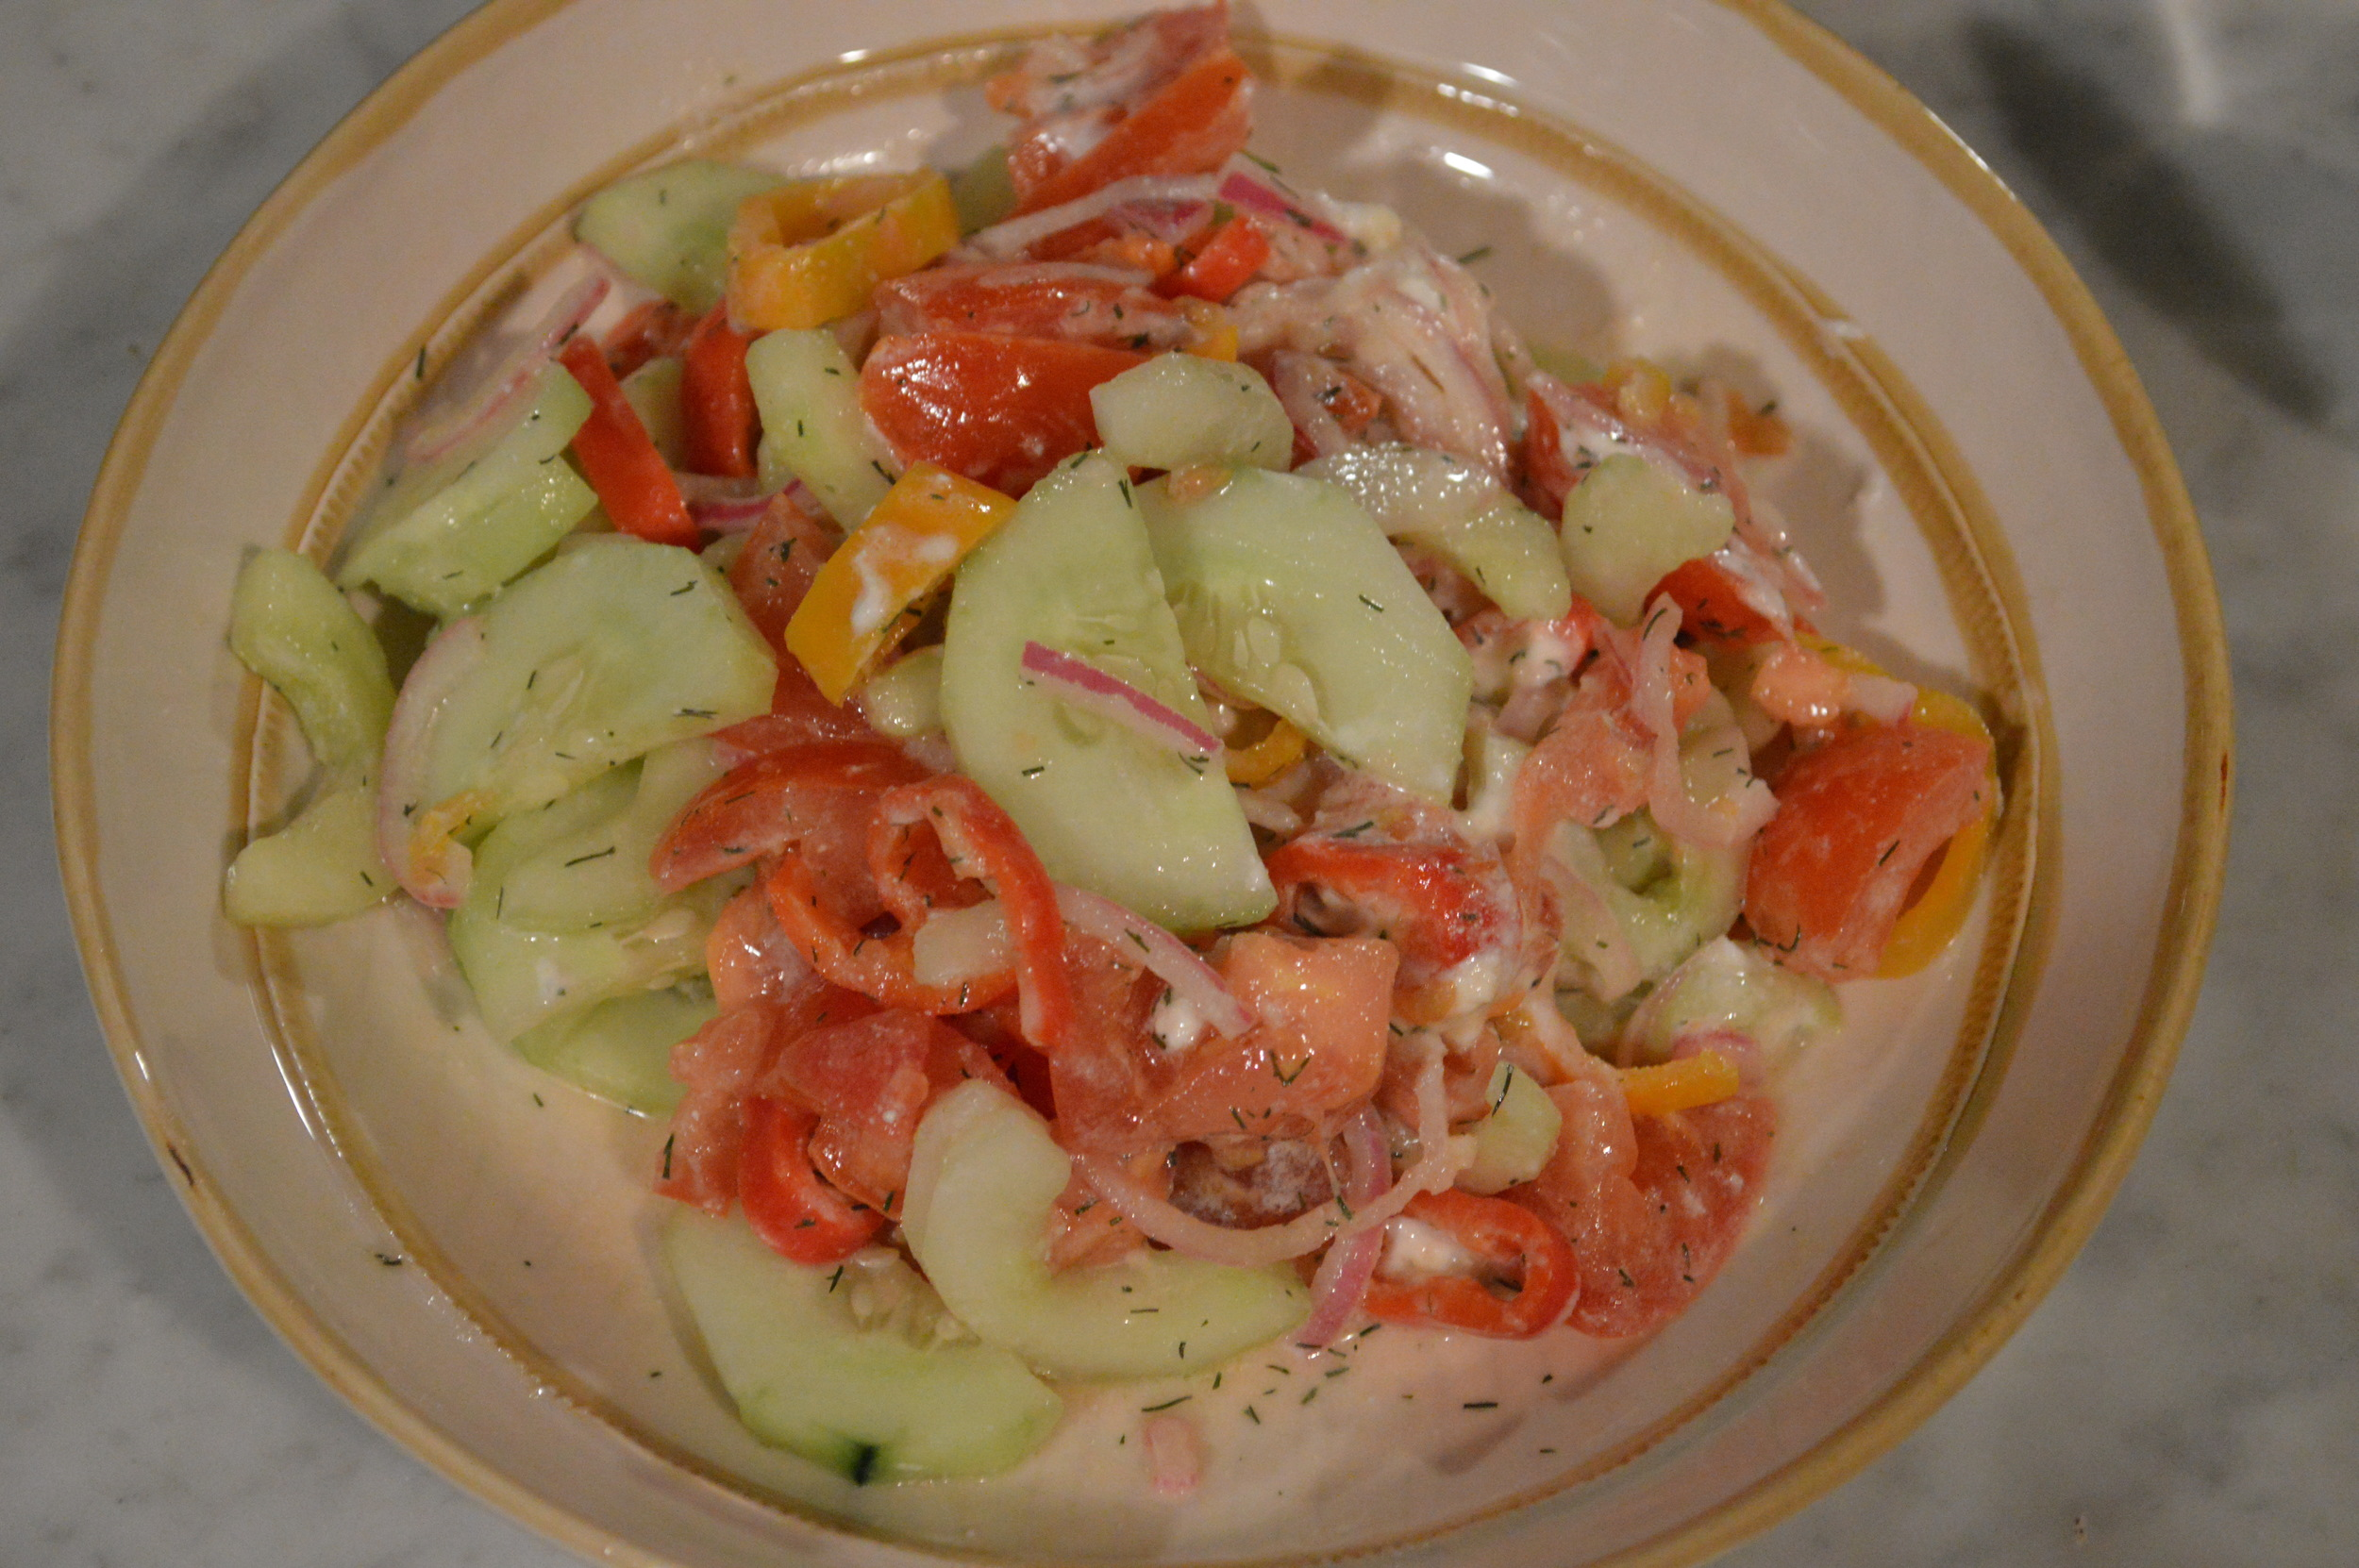 Cucumber + Tomato + Peppers Salad